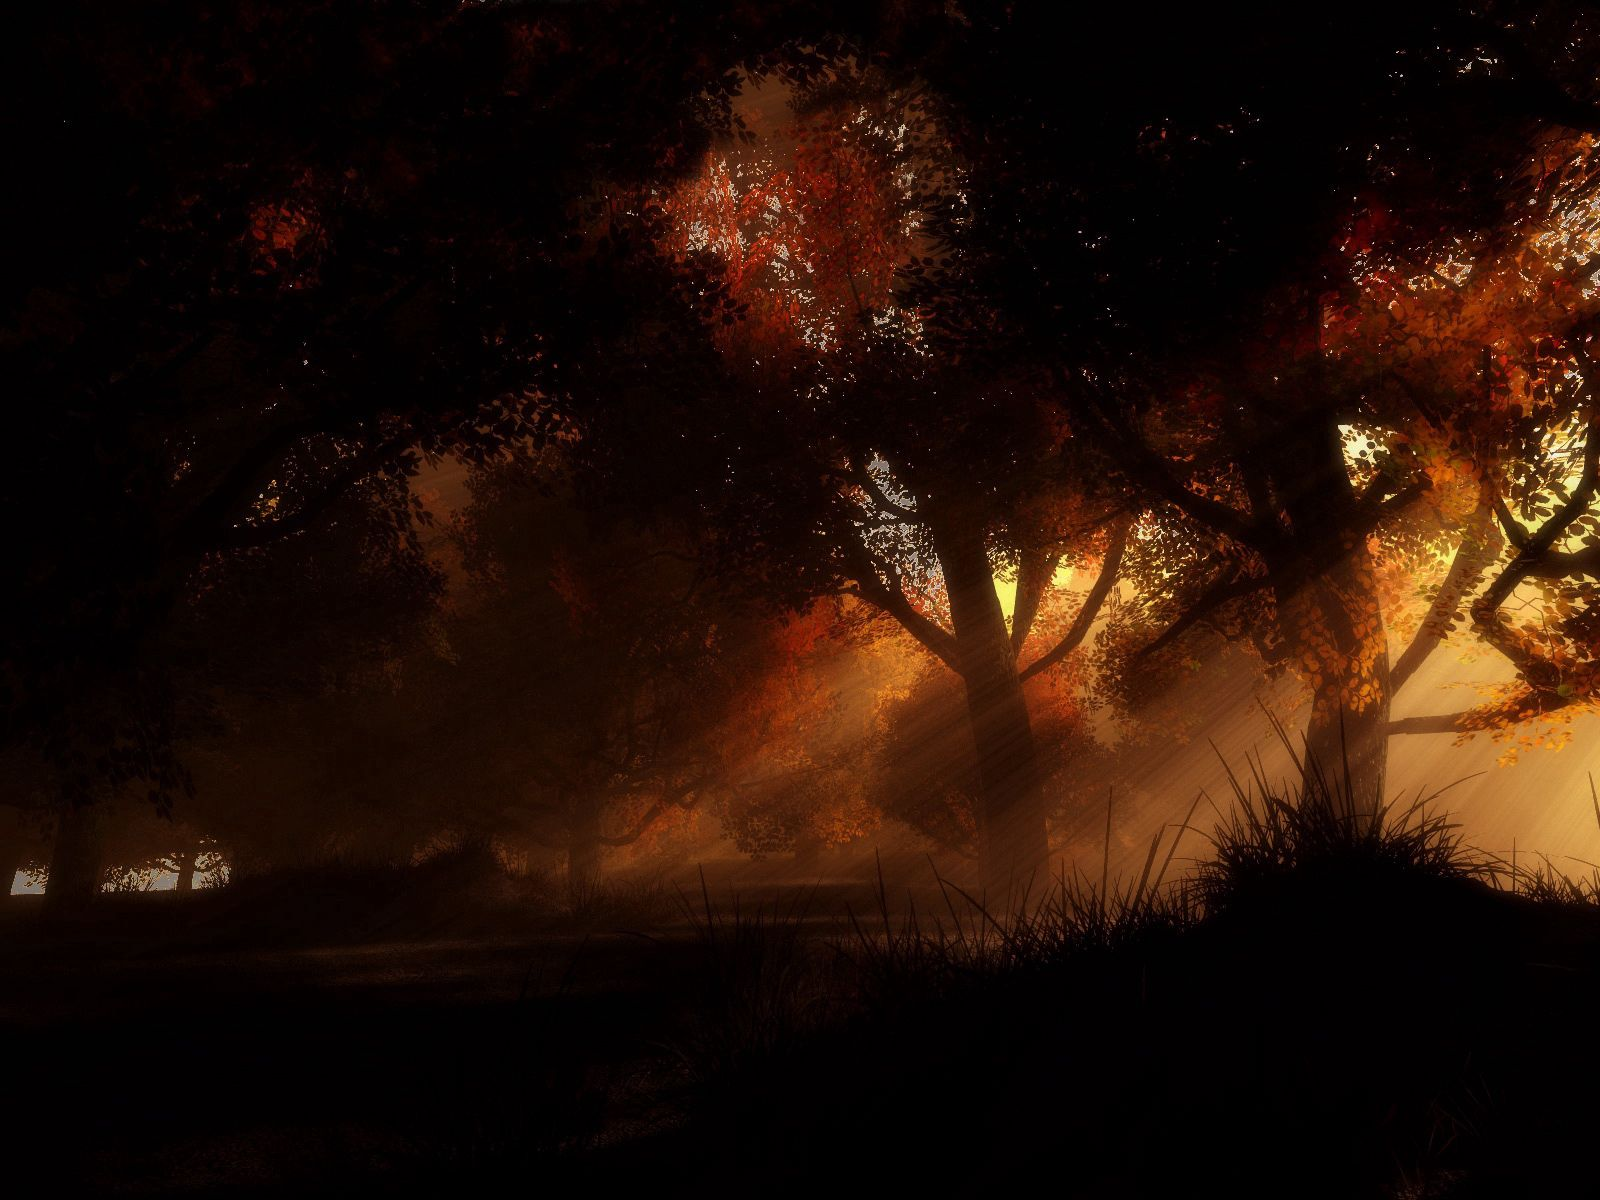 155436 download wallpaper Dark, Trees, Autumn, Night screensavers and pictures for free